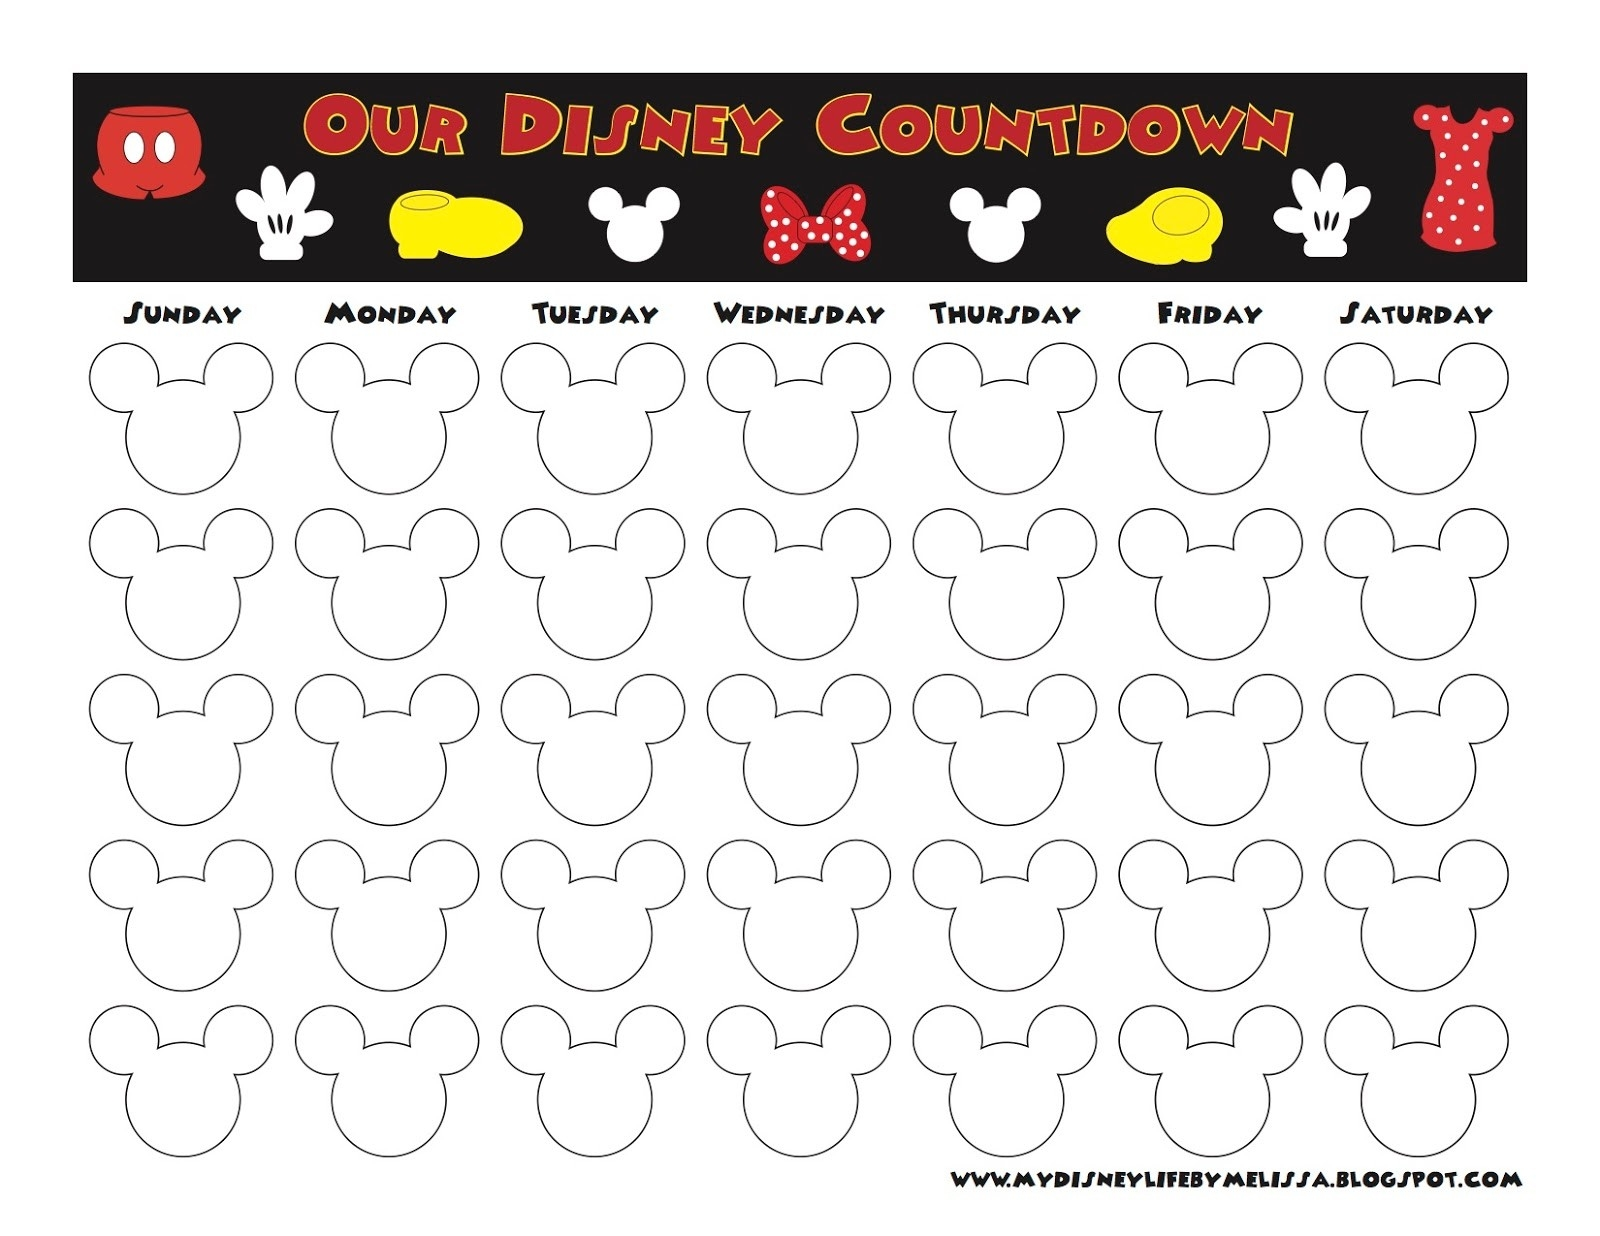 My Disney Life: Countdown Calendars-Blank Countdown Calendar 50 Days